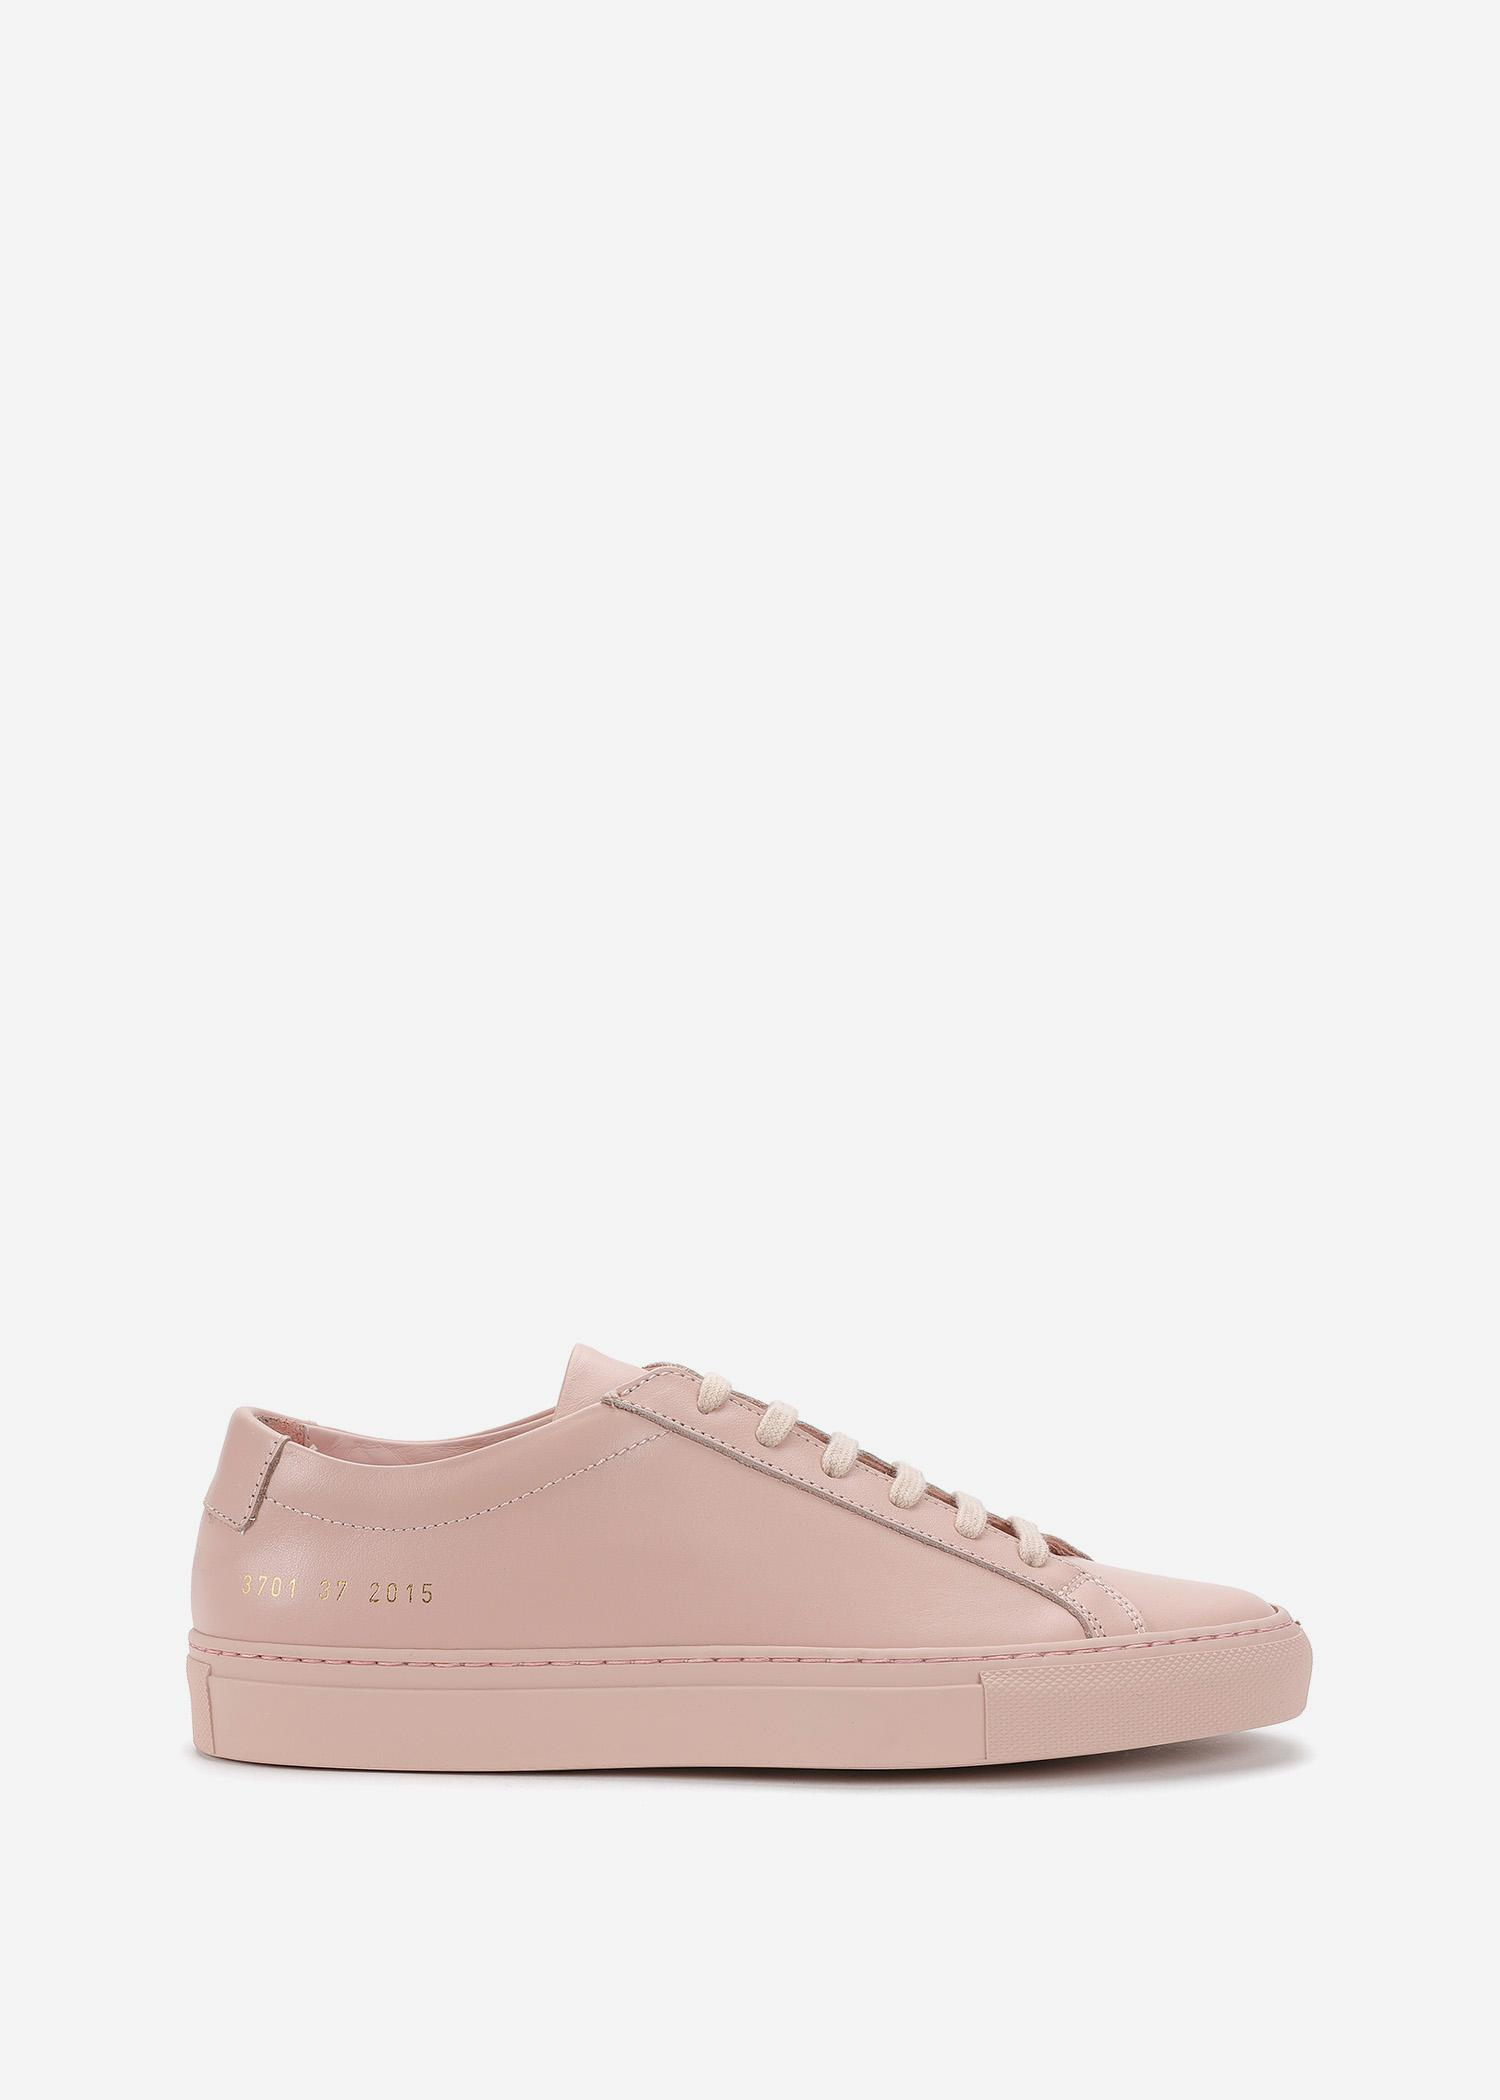 953acefef41 Common Projects Women s Sneakers Original Achilles Low in Pink ...